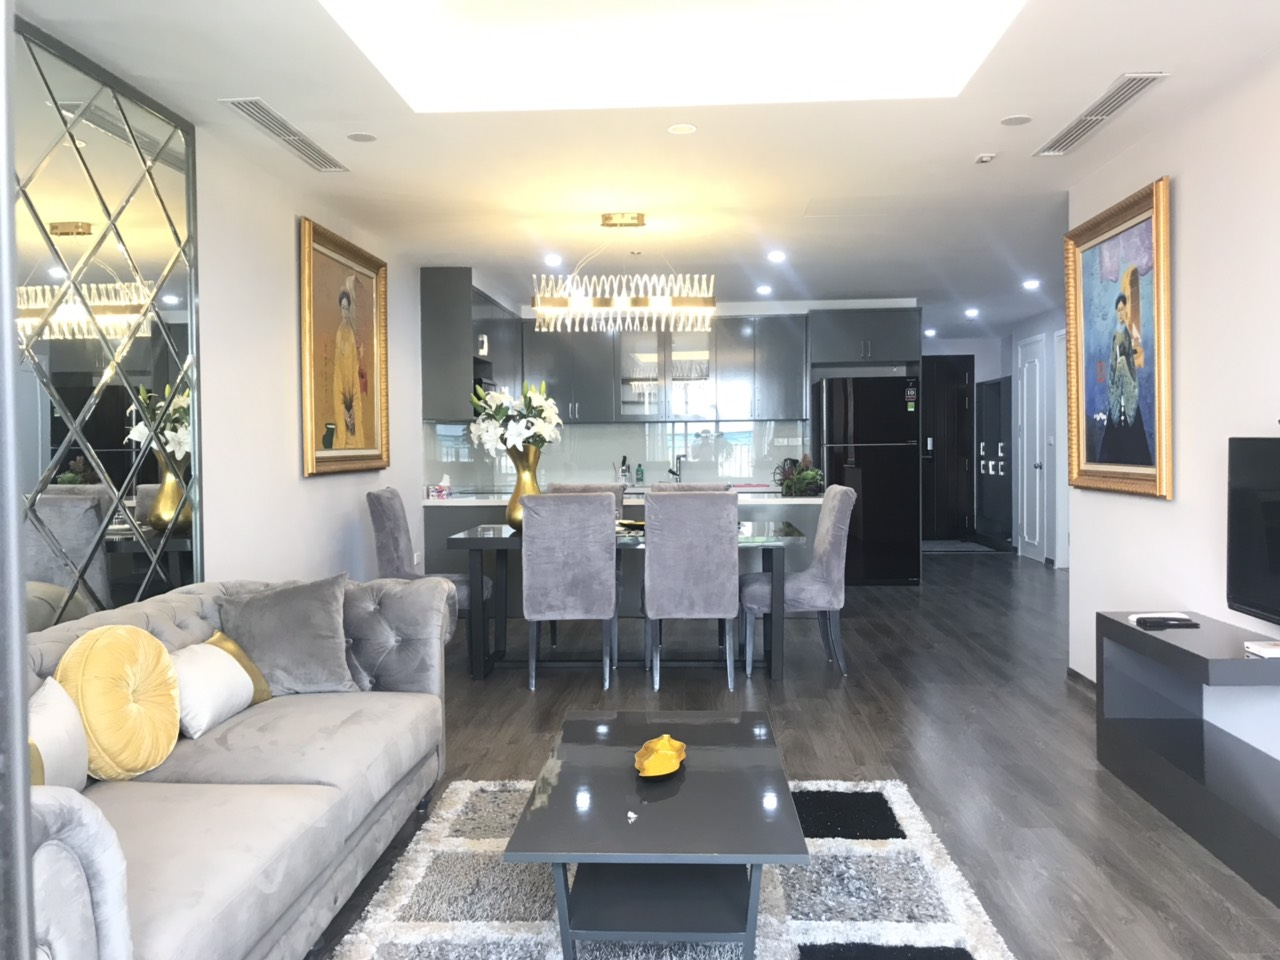 Brand new apartment for rent in DLeroisolei, Xuan Dieu street, Tay Ho district, Ha Noi